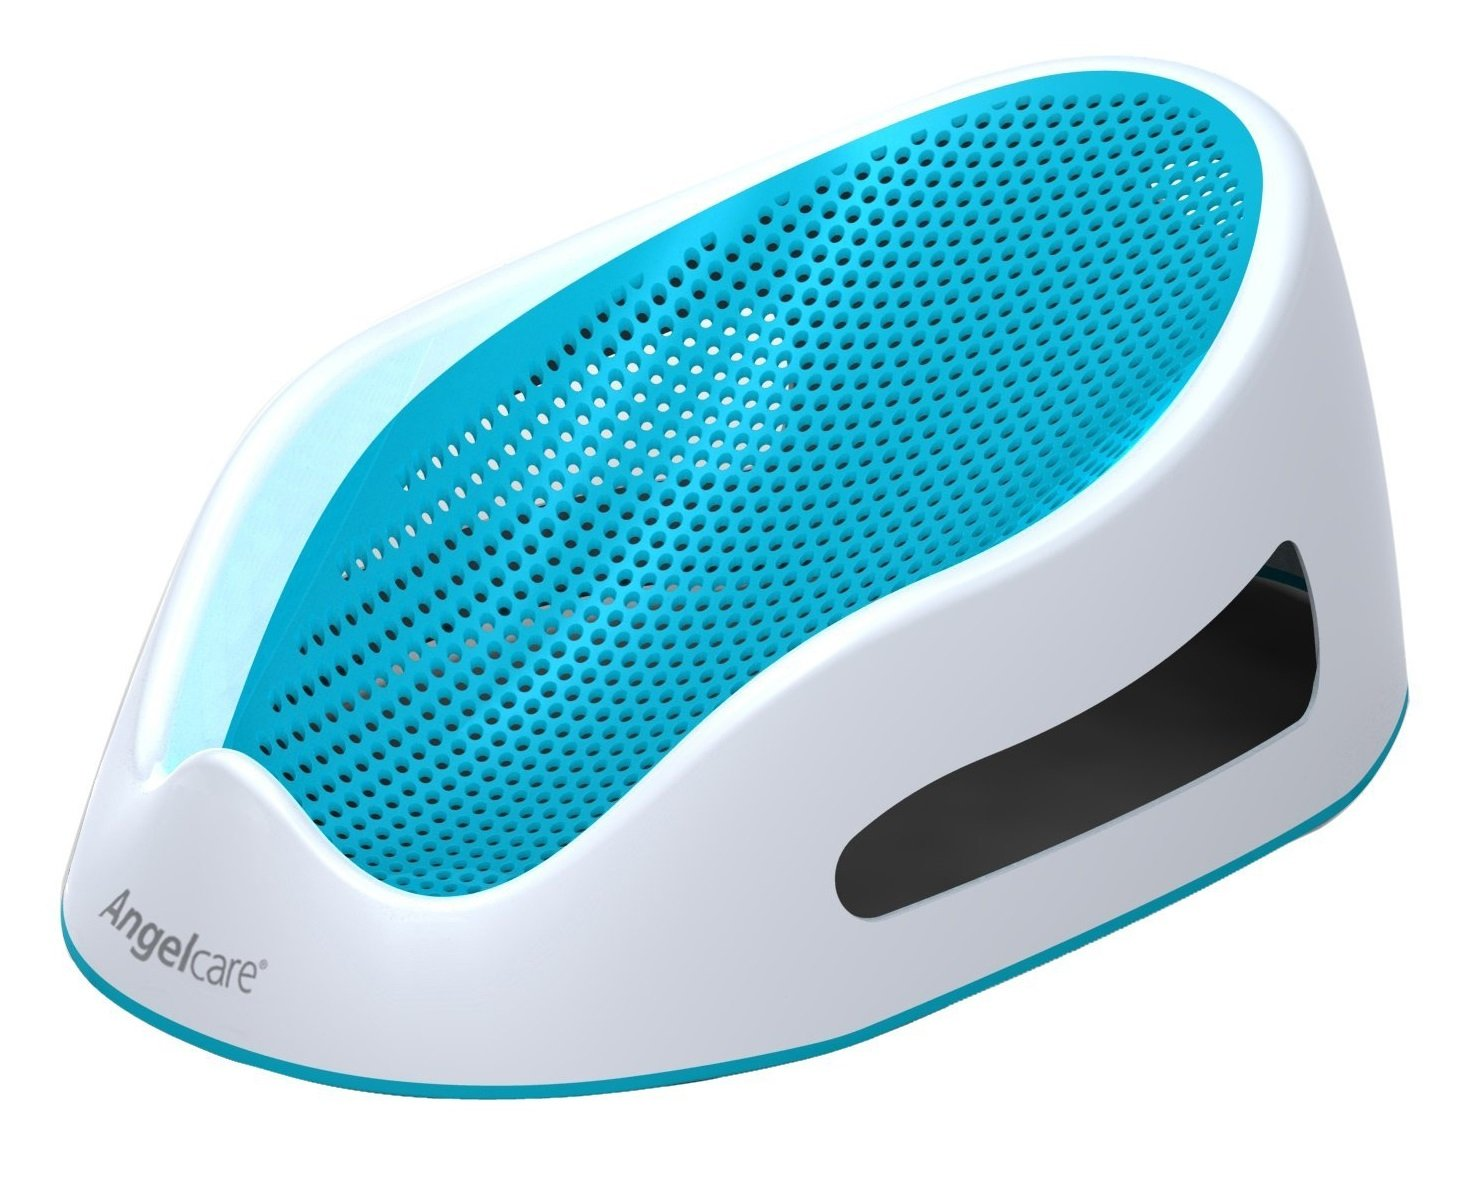 Angelcare Baby Bath Support, Aqua by Angelcare